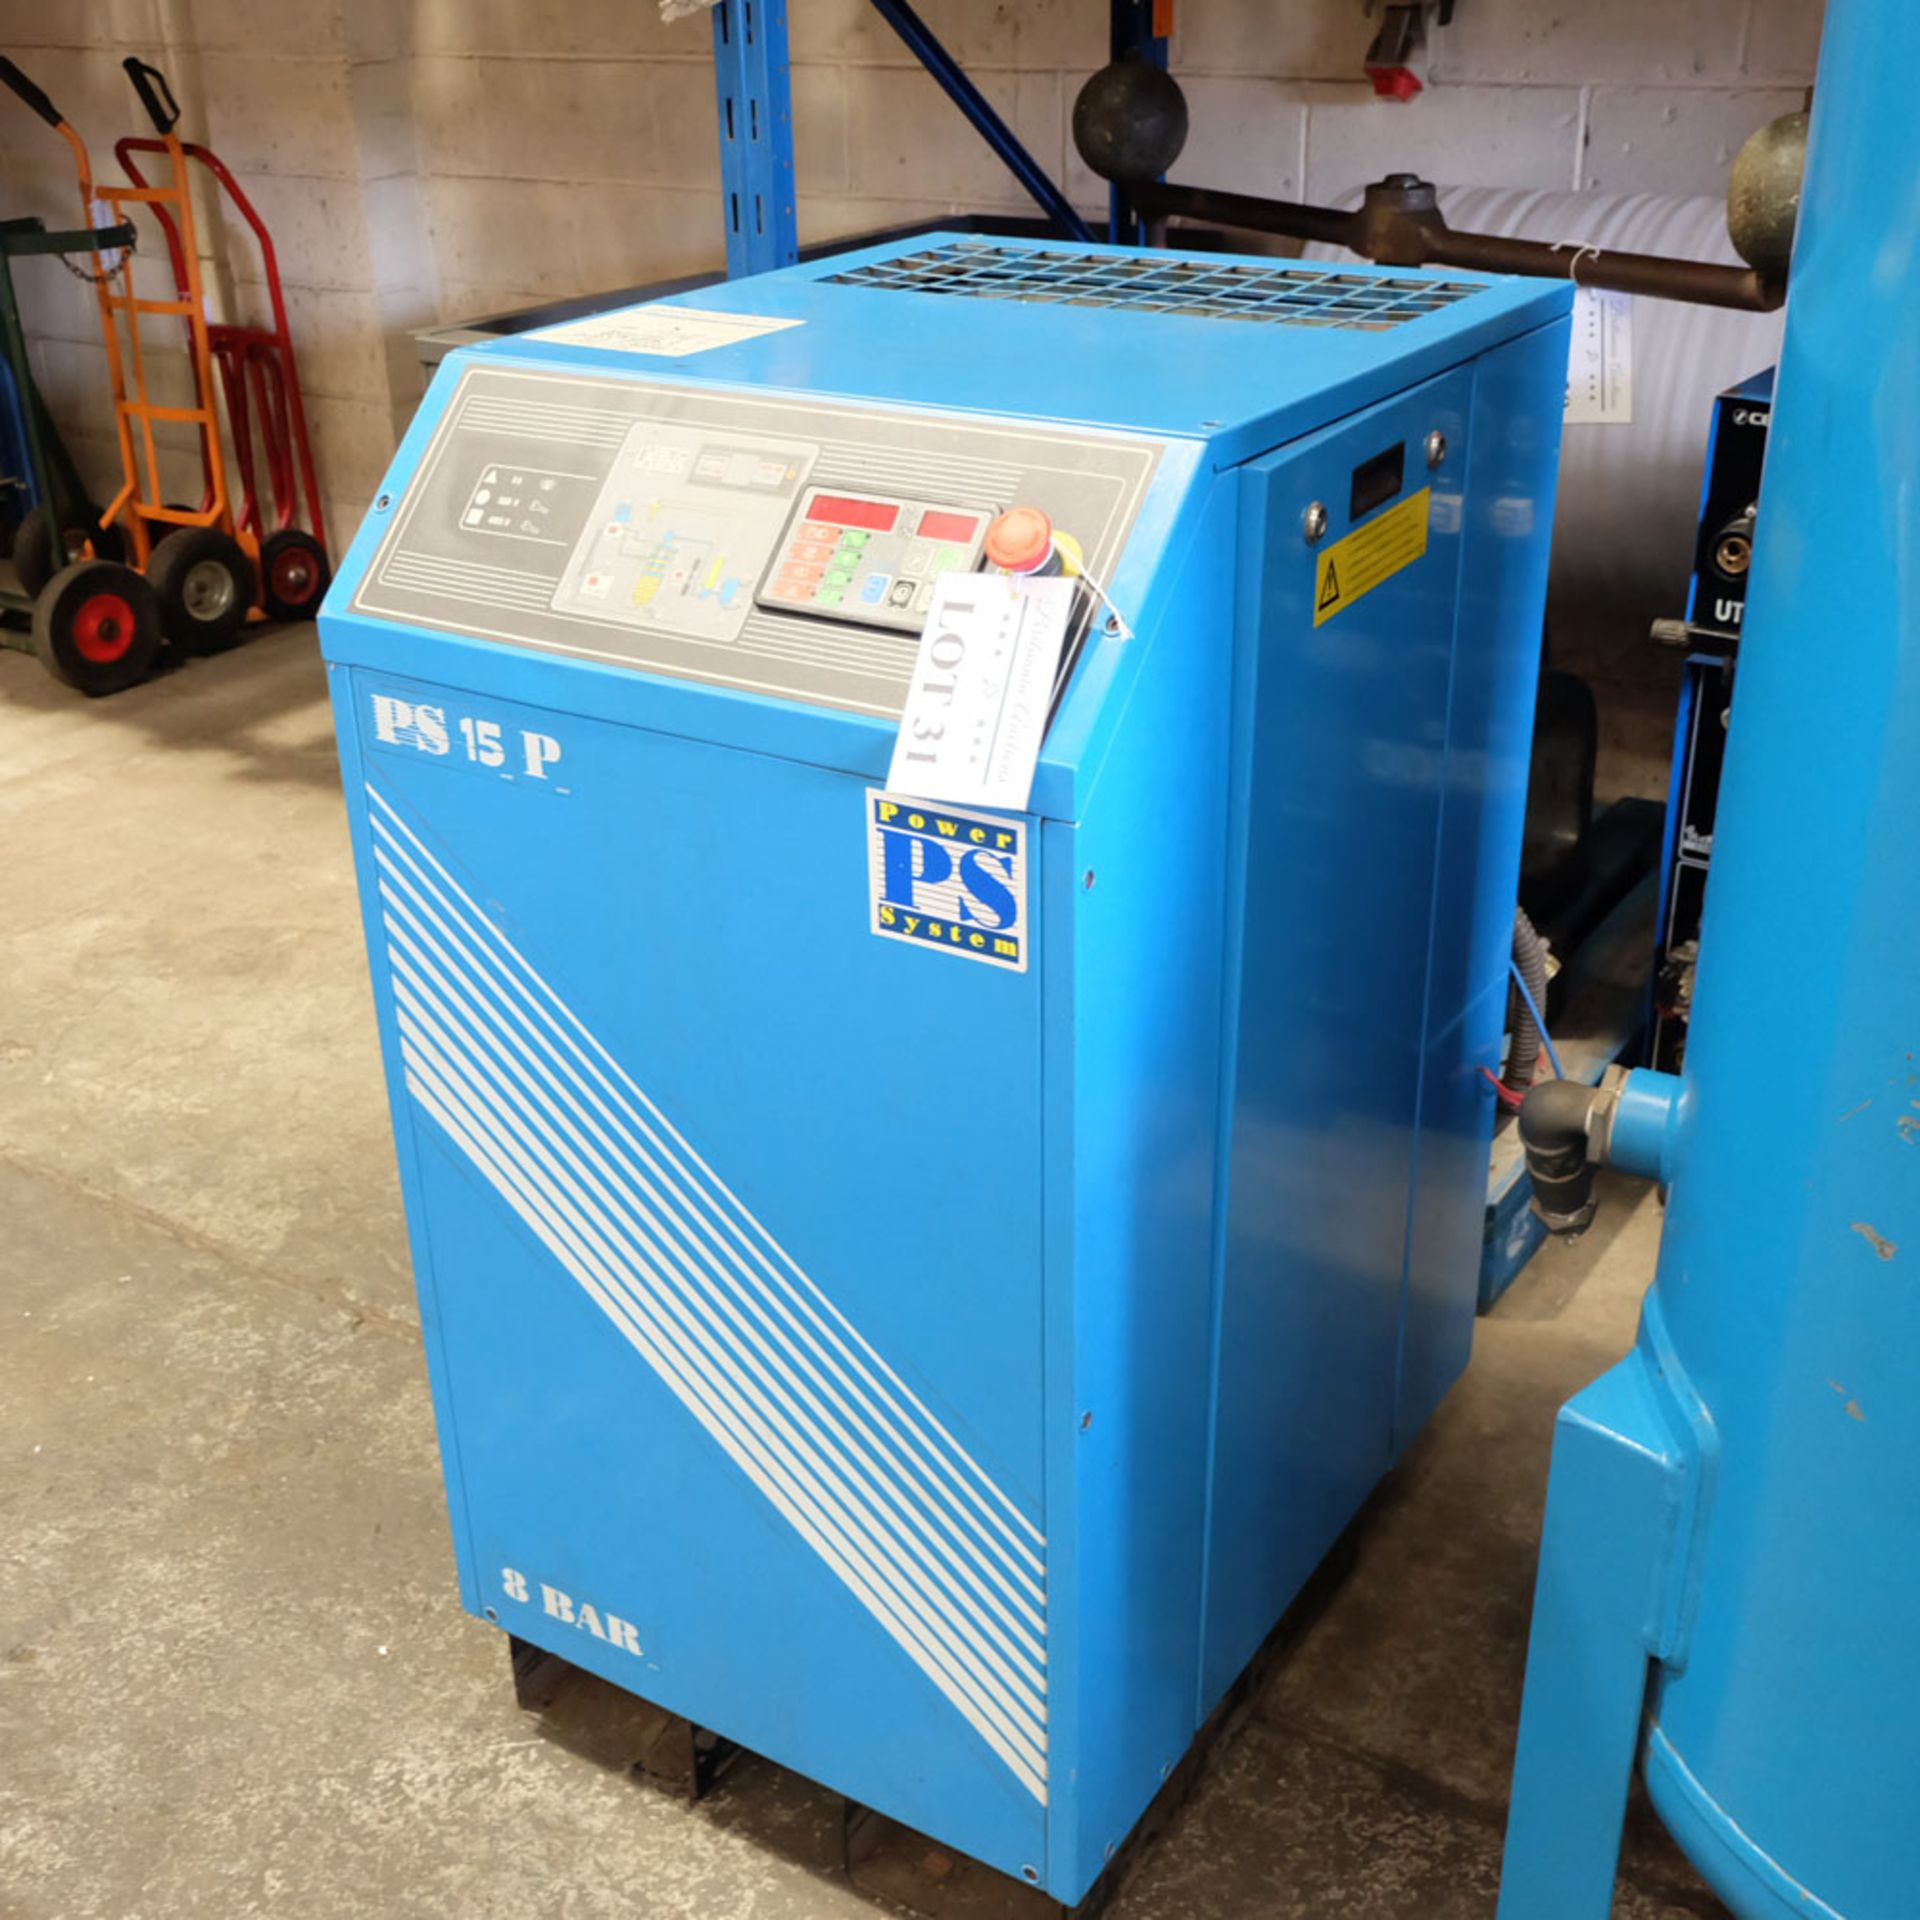 Power Systems PS15P - Rotary Air Compressor with 500L Receiver. Pressure 8 Bar. Capacity 80 cfm. - Image 3 of 8